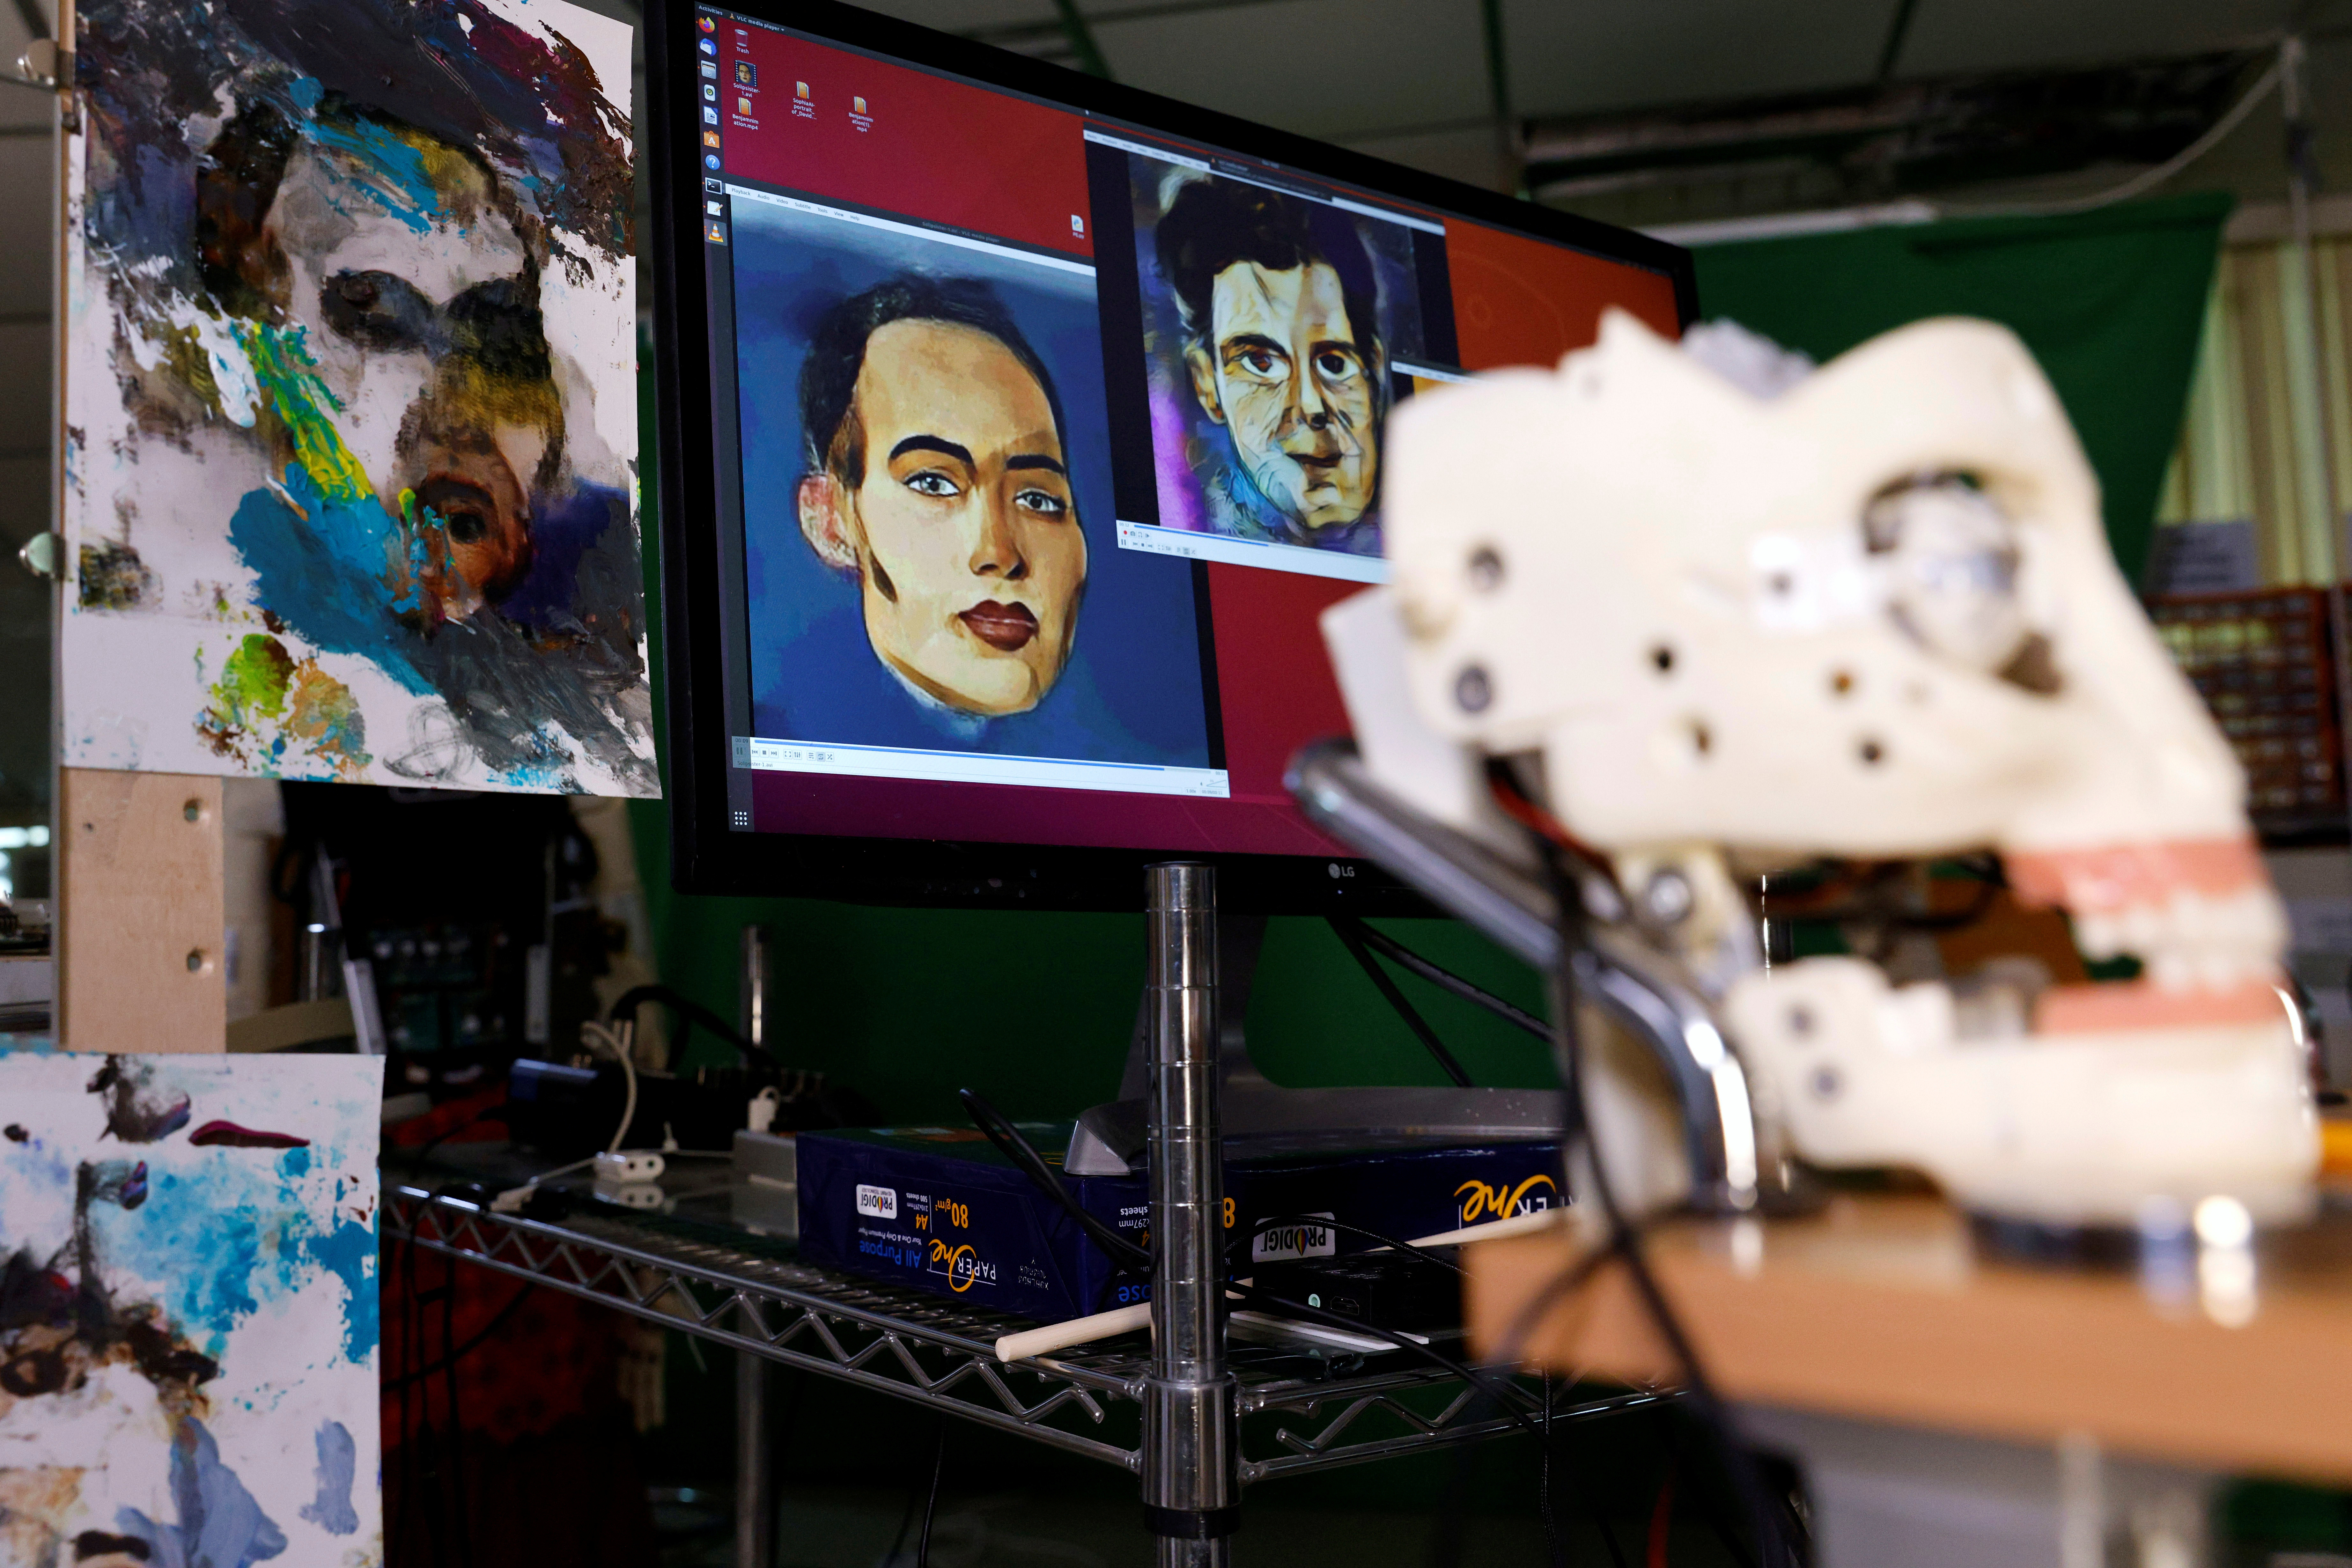 Digital artwork by humanoid robot Sophia, developed by Hanson Robotics, are seen at her studio before her non-fungible token (NFT) artwork is auctioned, in Hong Kong, China March 16, 2021. Picture taken March 16, 2021. REUTERS/Tyrone Siu - RC25GM9F3OM7